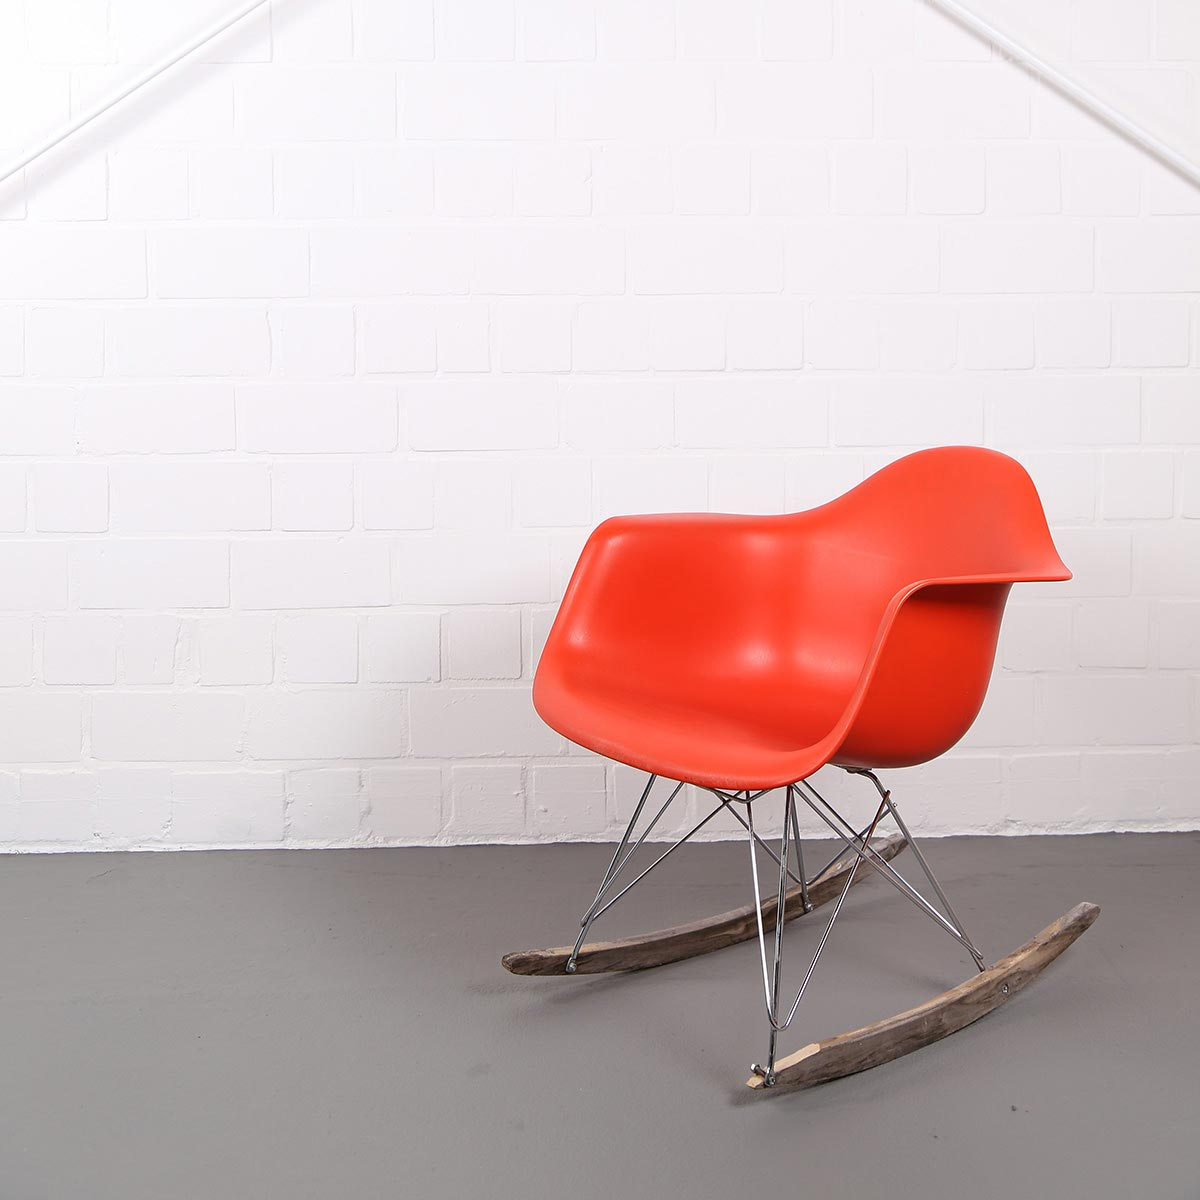 Charles Eames Vitra Vitra Charles Eames Rocking Chair Rar Orange Dekaden